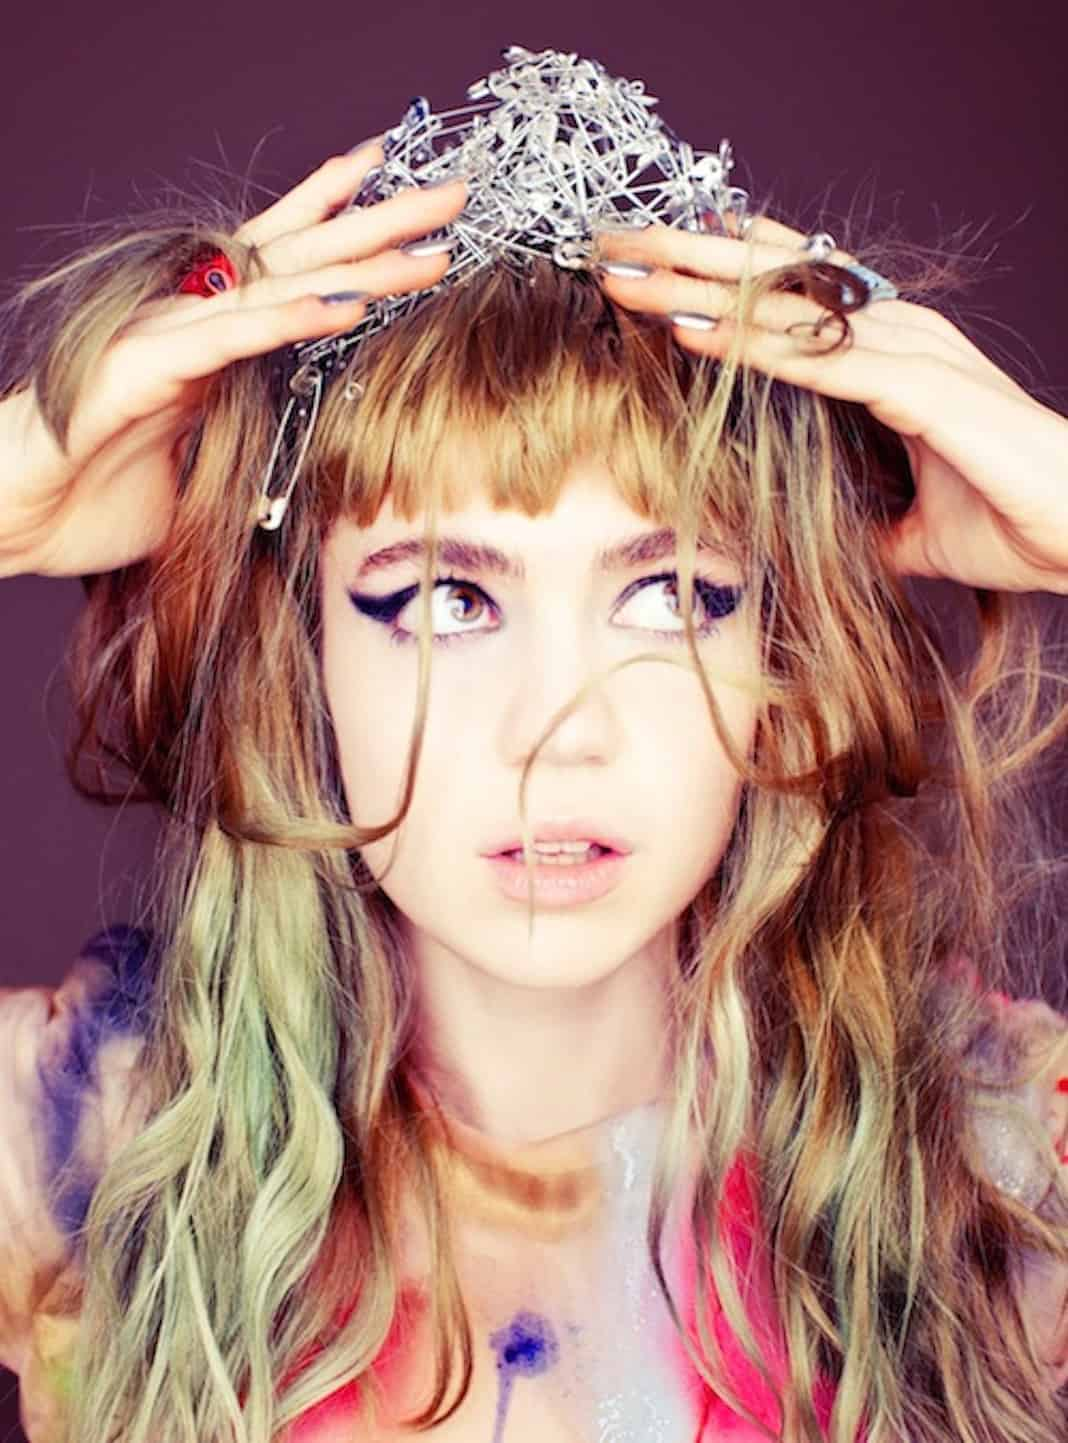 Grimes Debuts a New Video and Unreleased Song